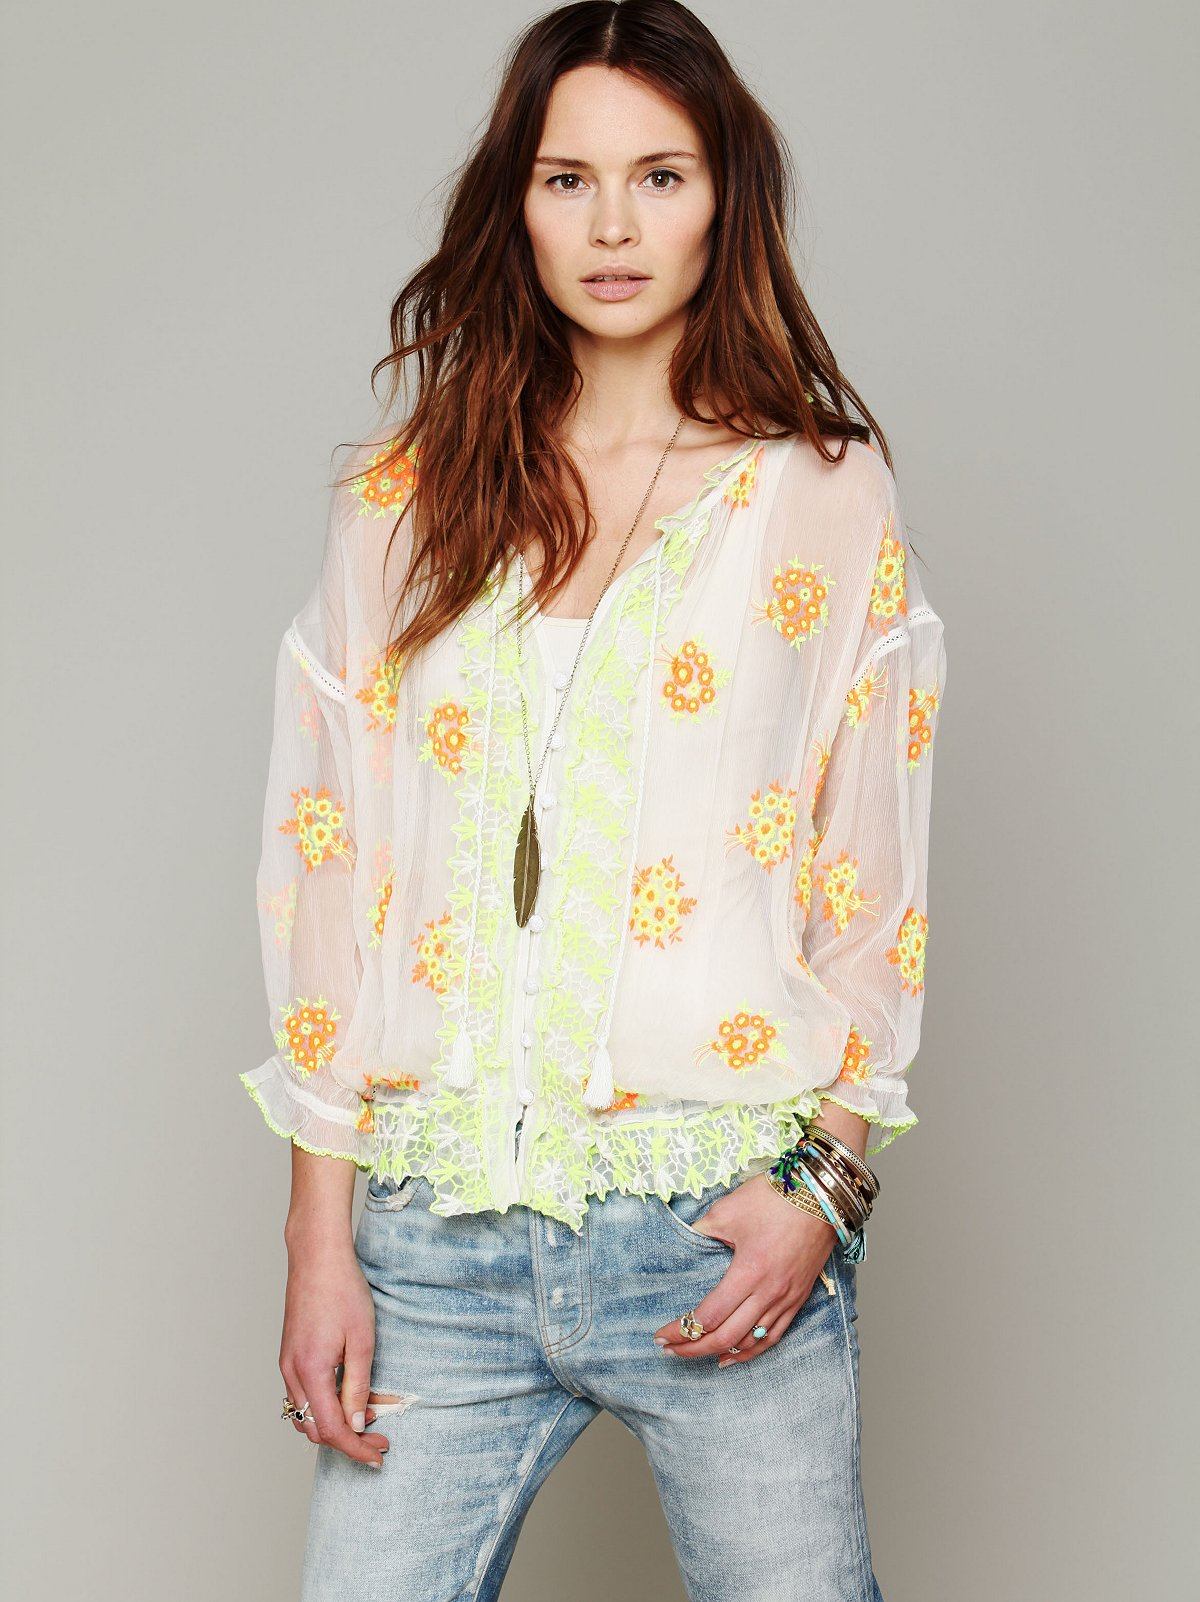 FP New Romantics Neon Embroidered Blouse